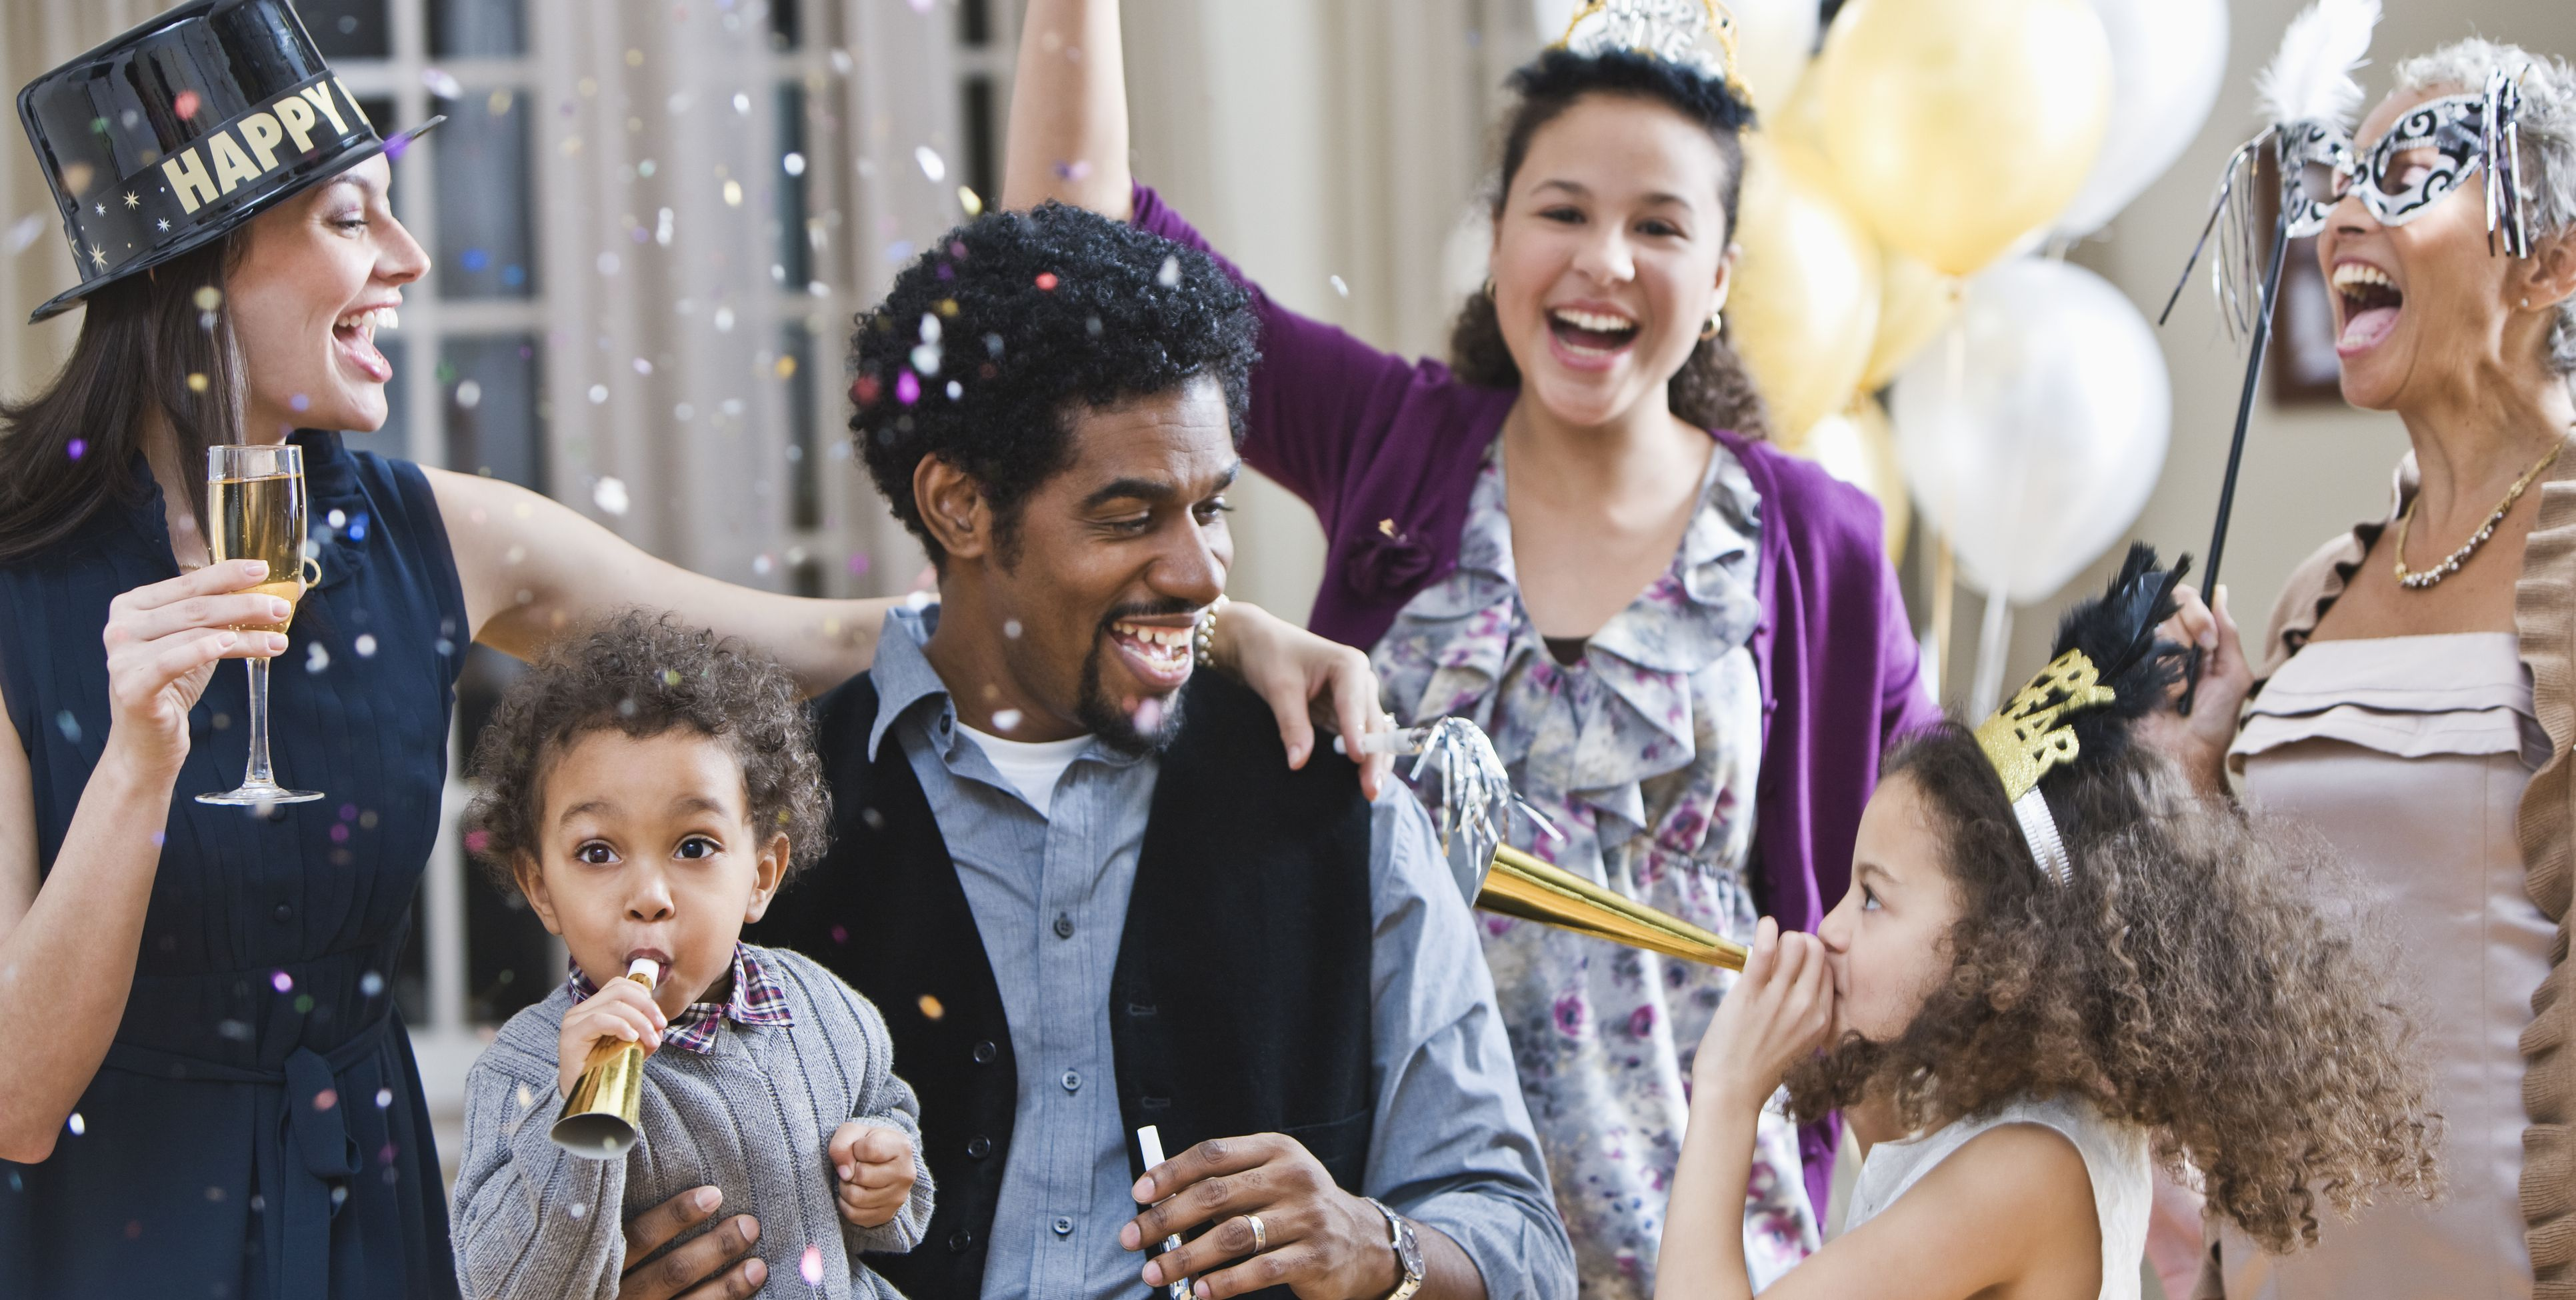 12 New Year's Traditions to Start With Your Family